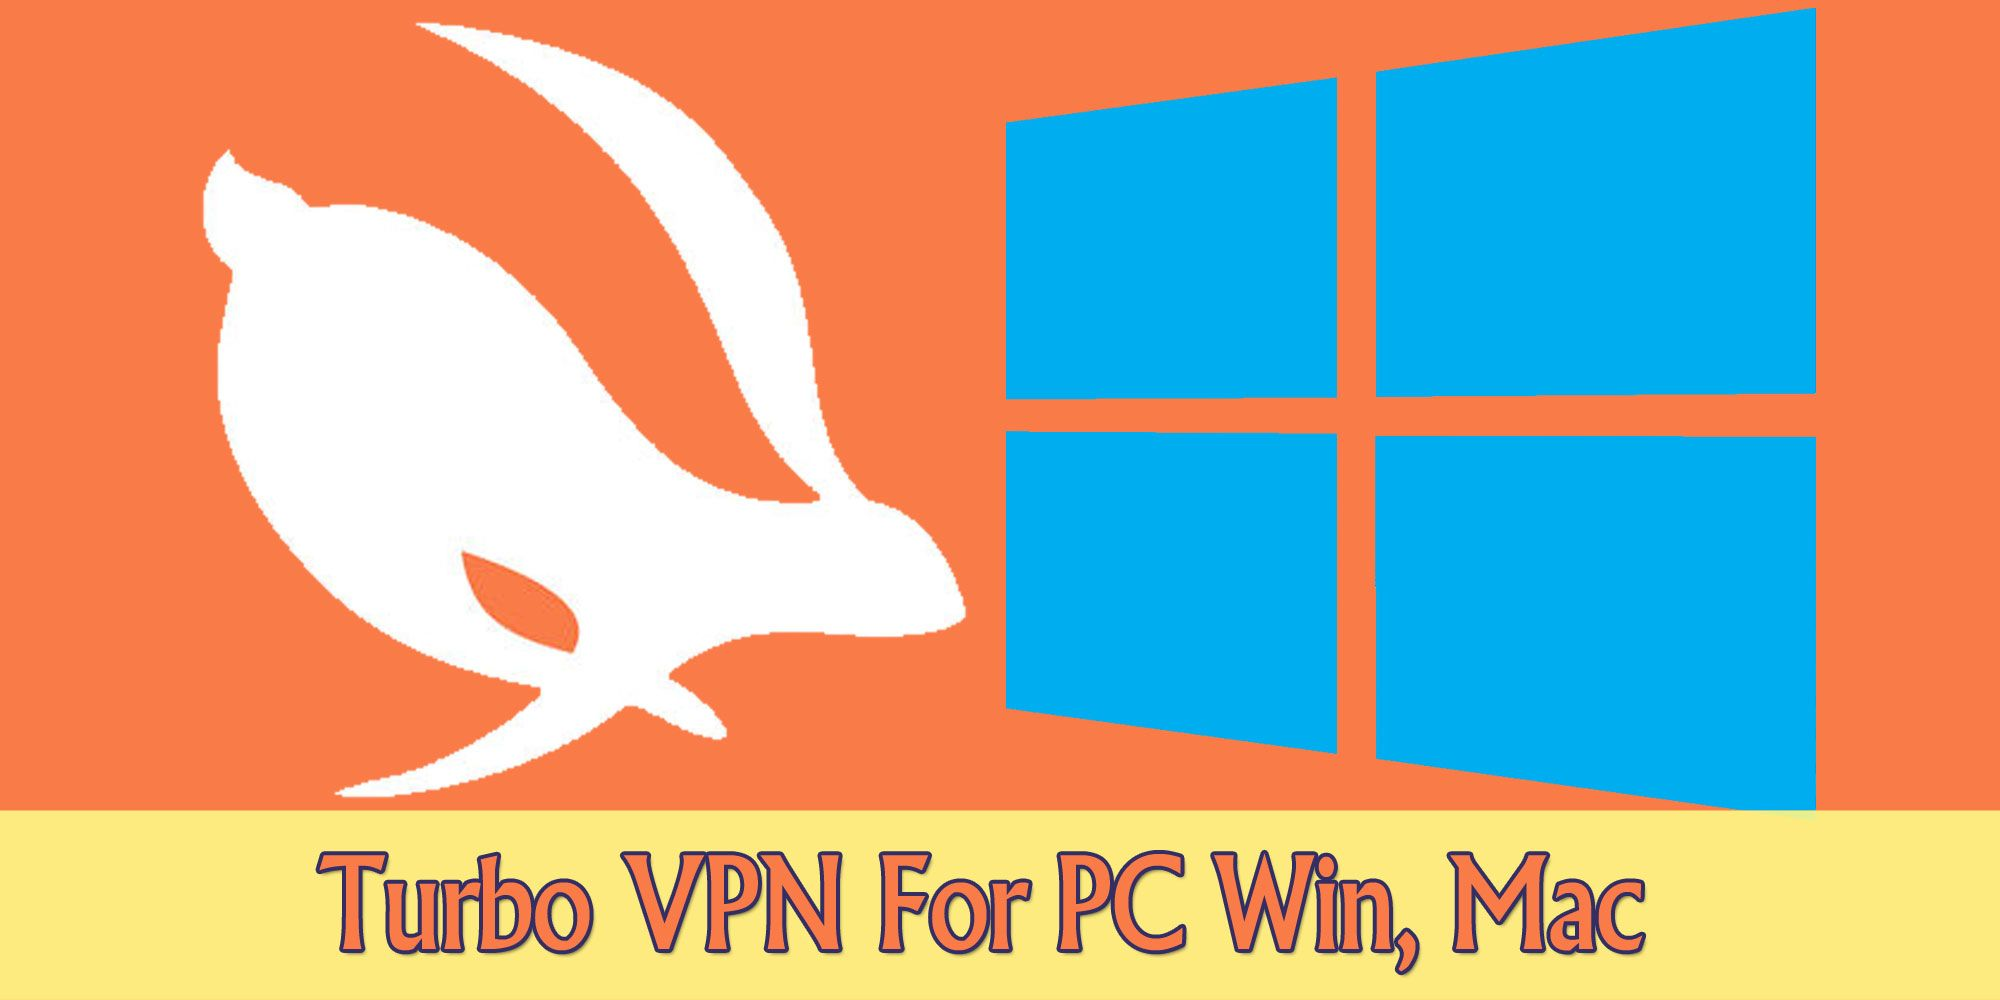 d81927af4b16b1df90271de7abc18d82 - One Click Vpn For Windows 10